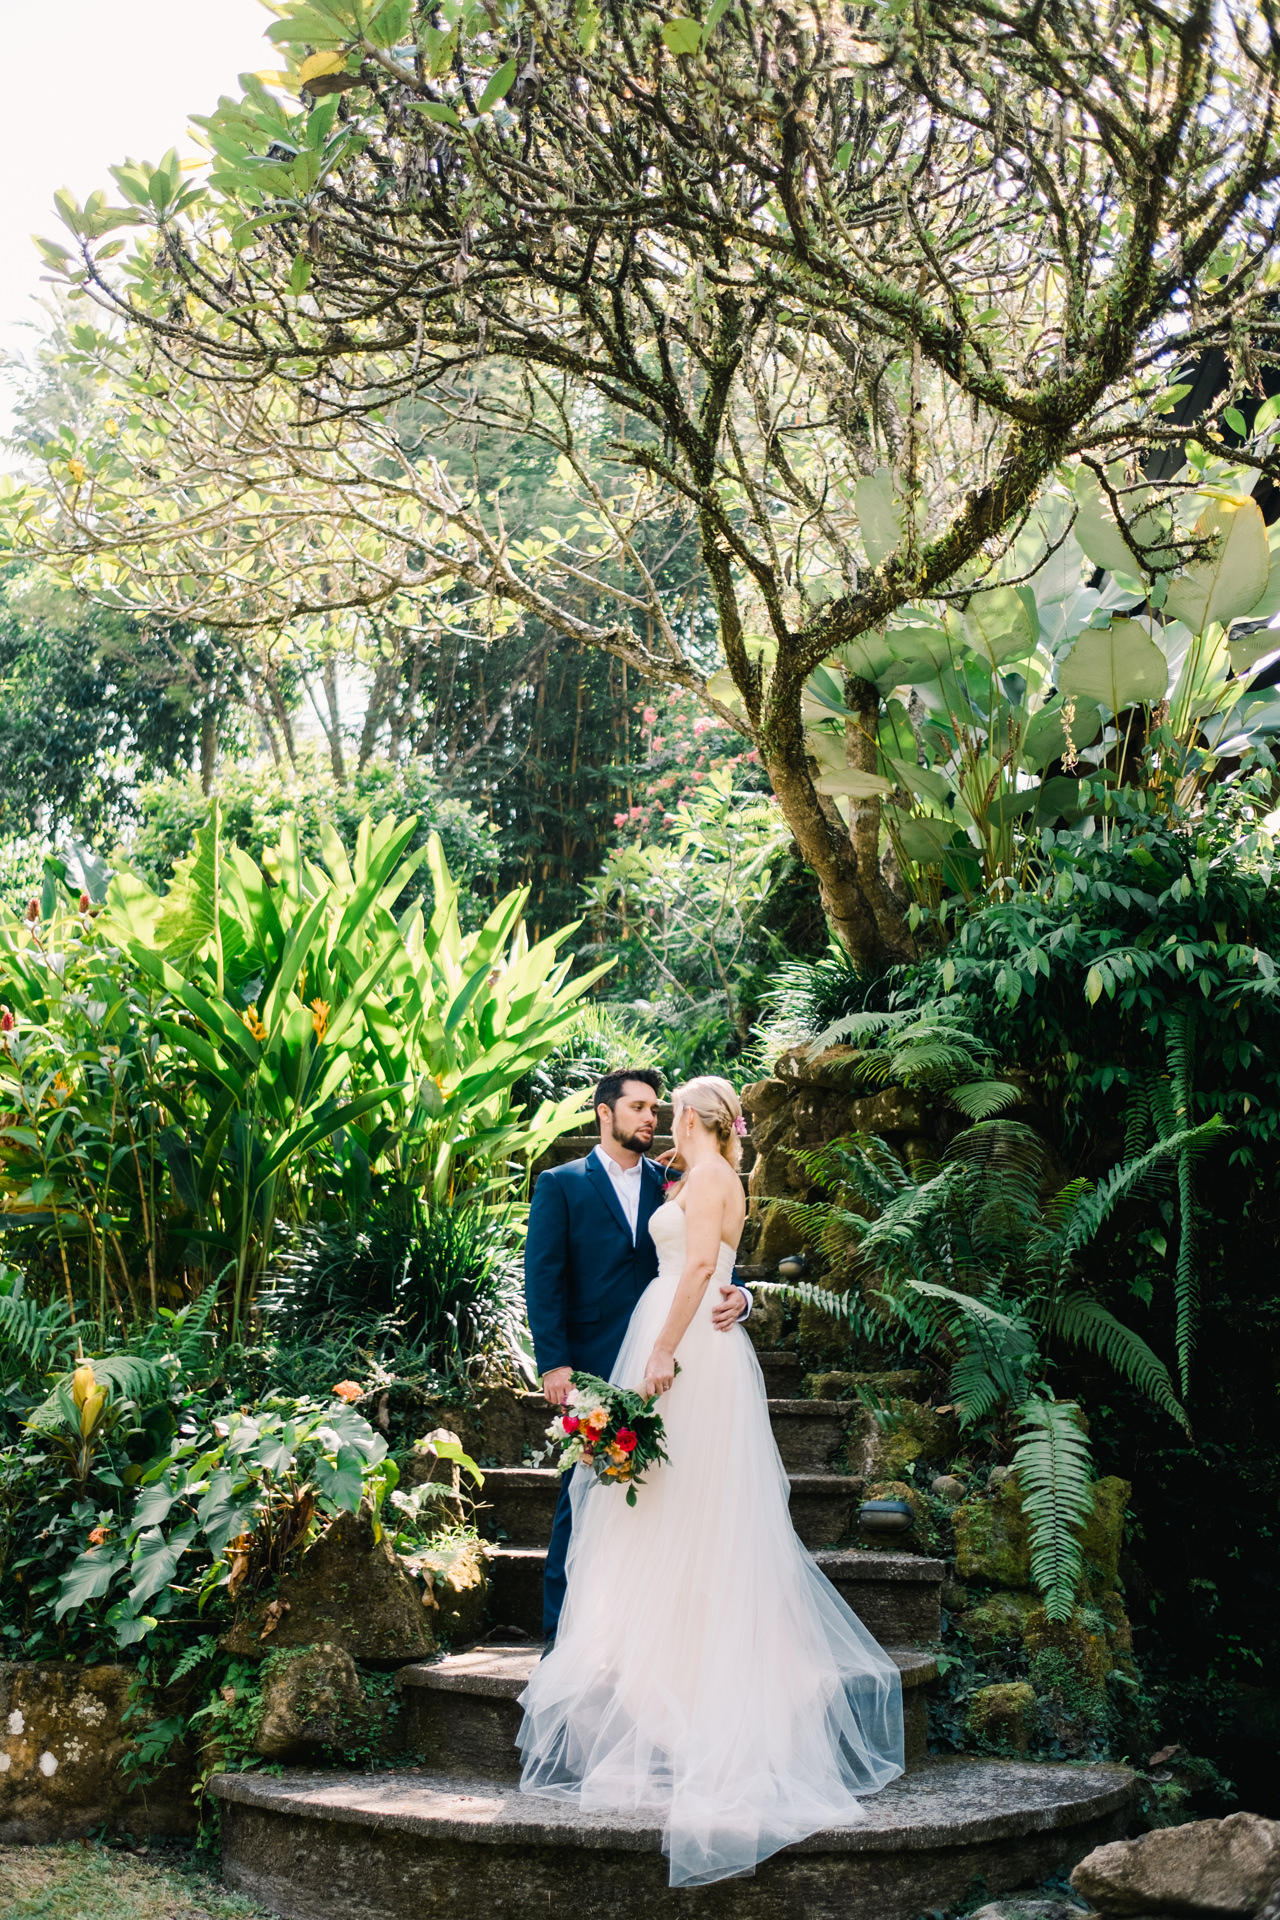 M&D: Greenery Ubud Wedding at Villa Beji Indah 10